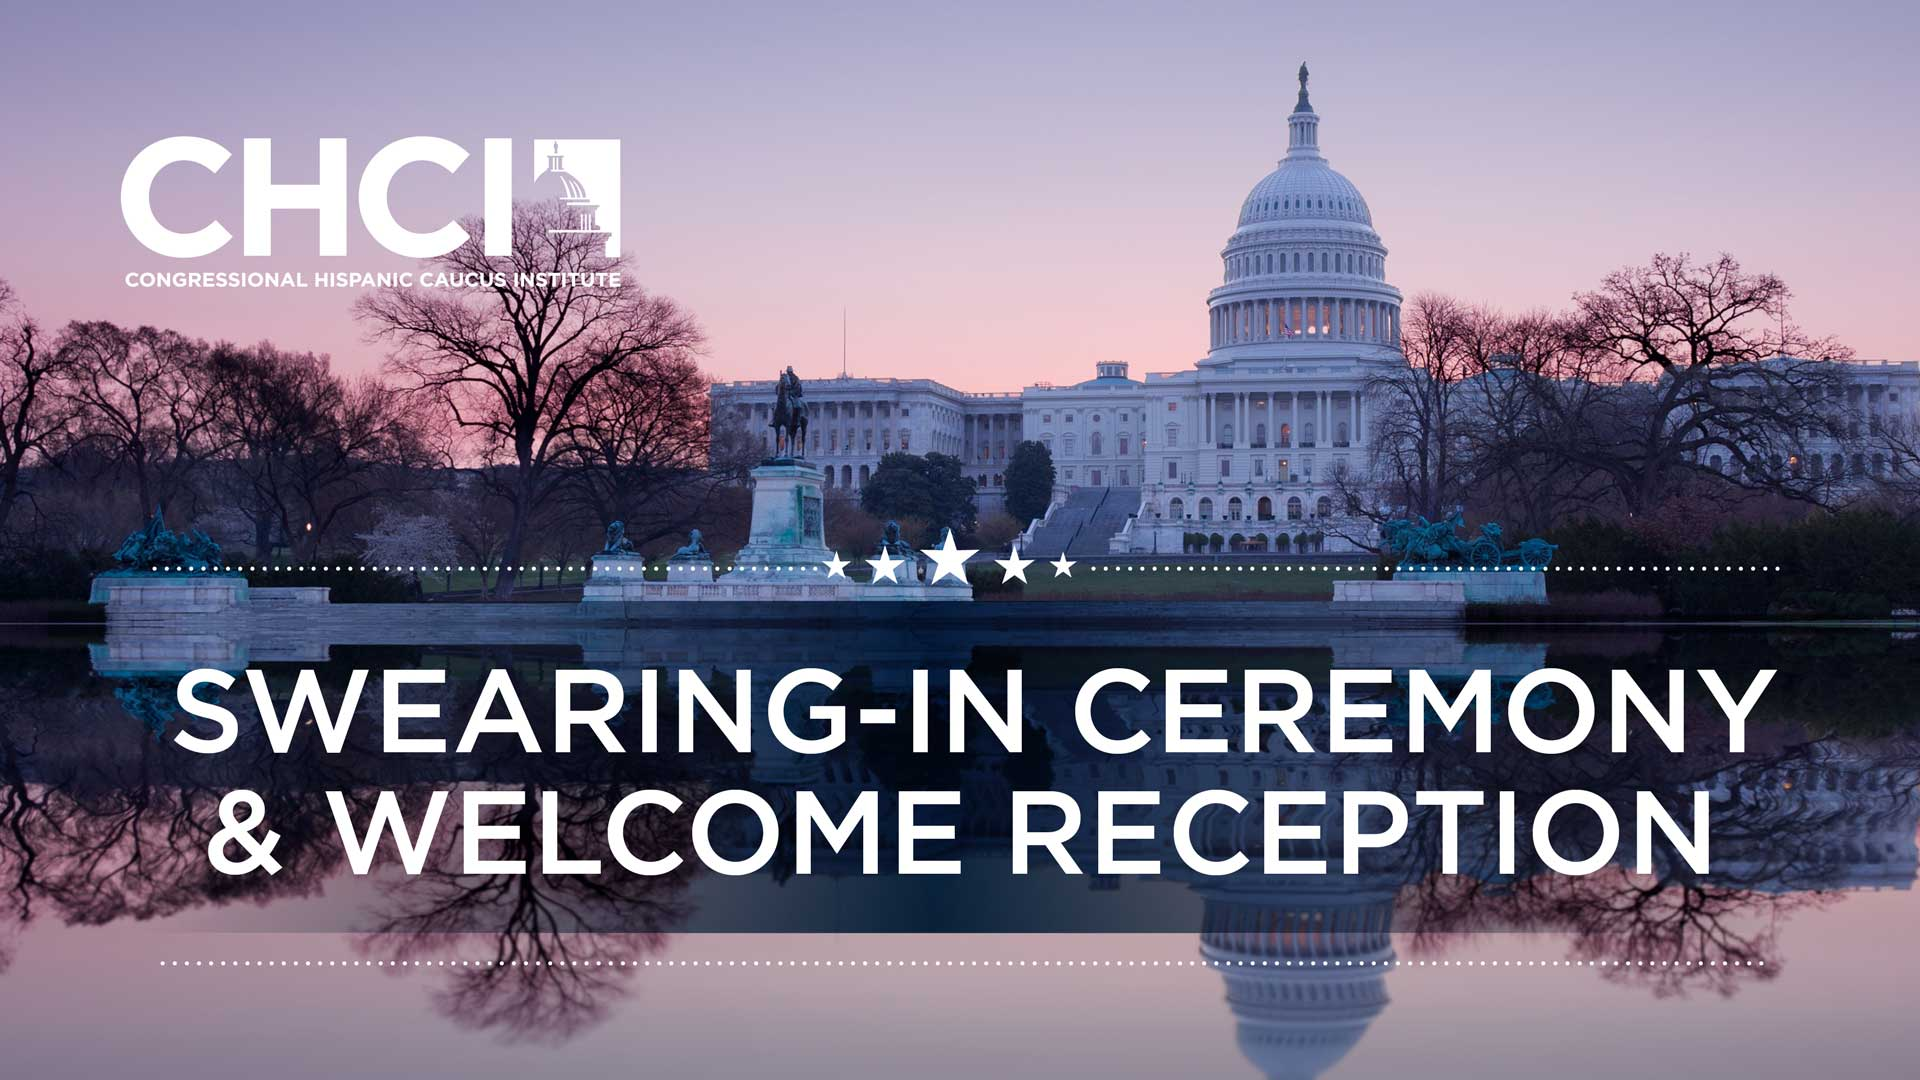 CHCI Swearing-In Ceremony & Welcome Reception